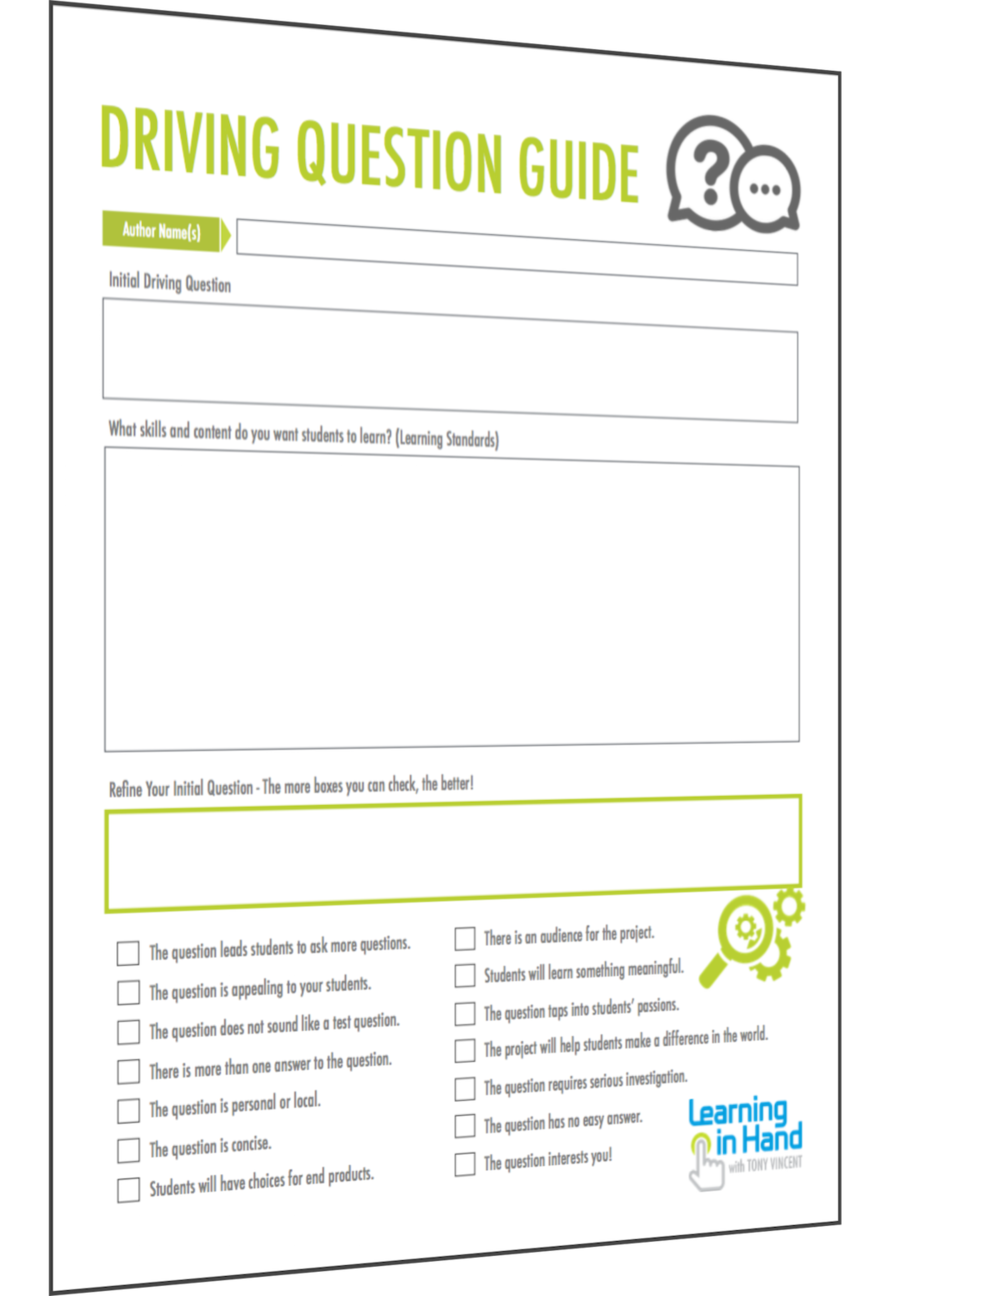 Download the Driving Question Guide PDF